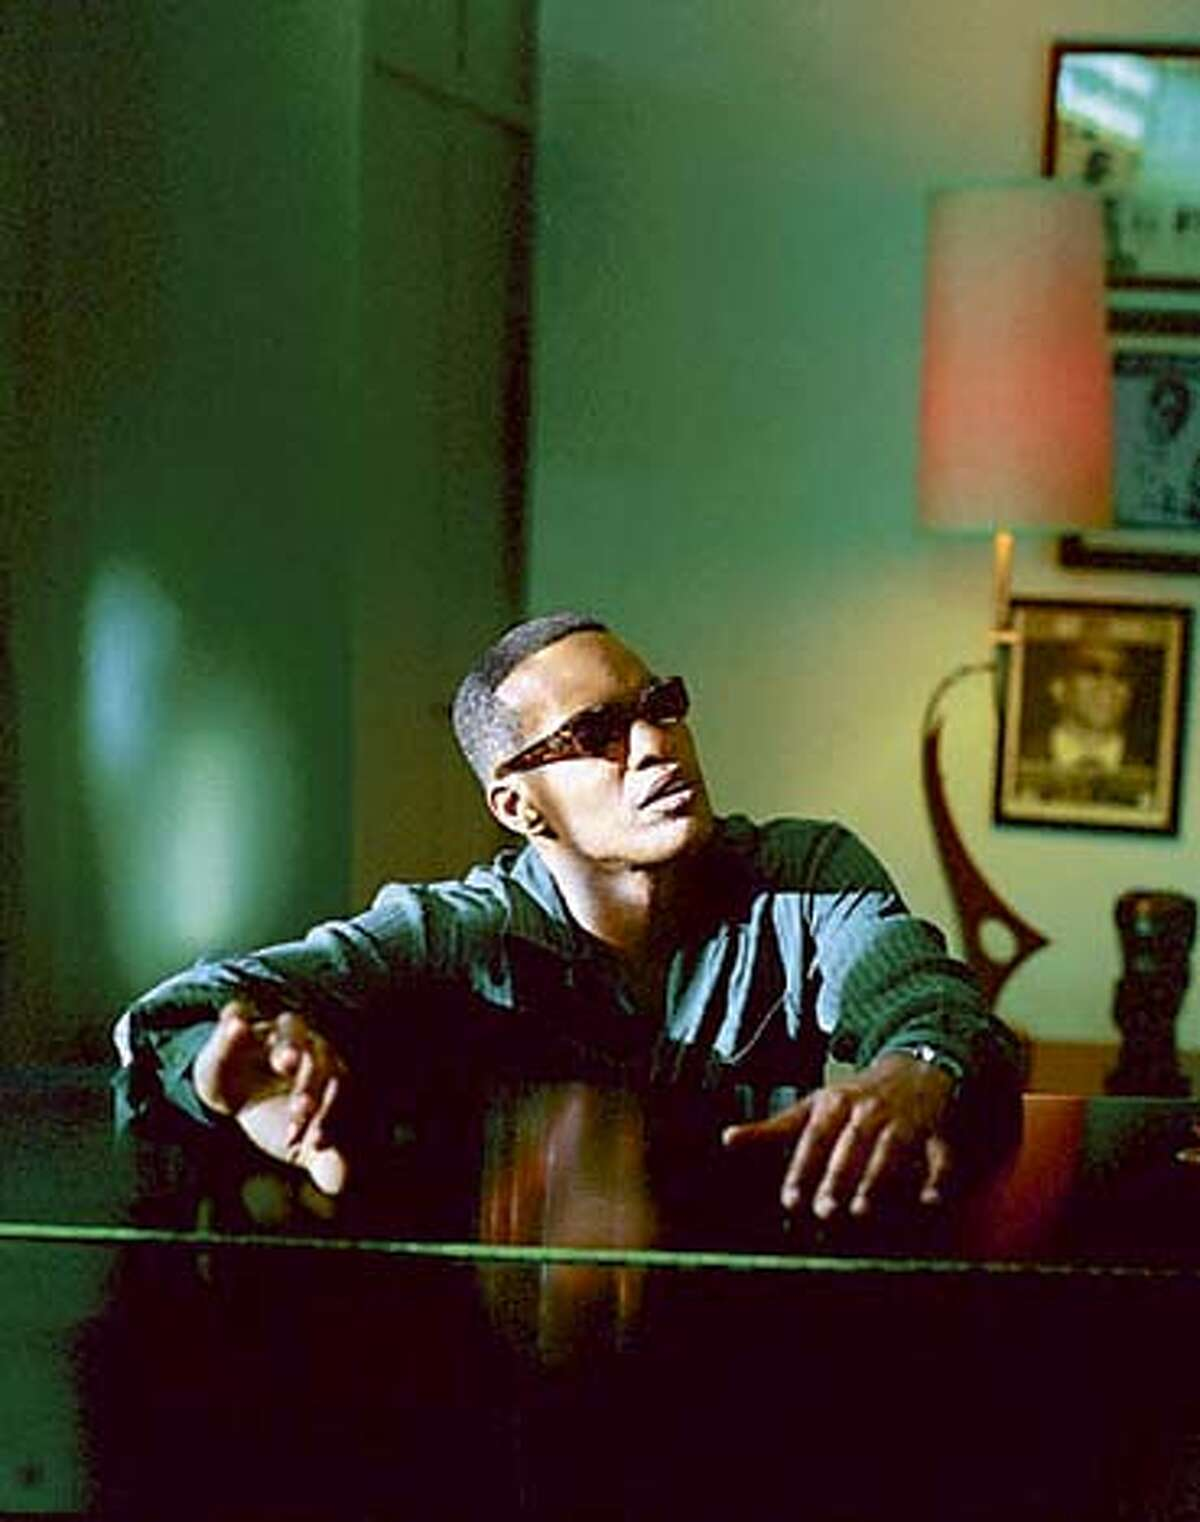 JAMIE FOXX as American legend Ray Charles in the musical biographical drama, Ray. Datebook#Datebook#SundayDateBook#10-24-2004#ALL#Advance##0422414916